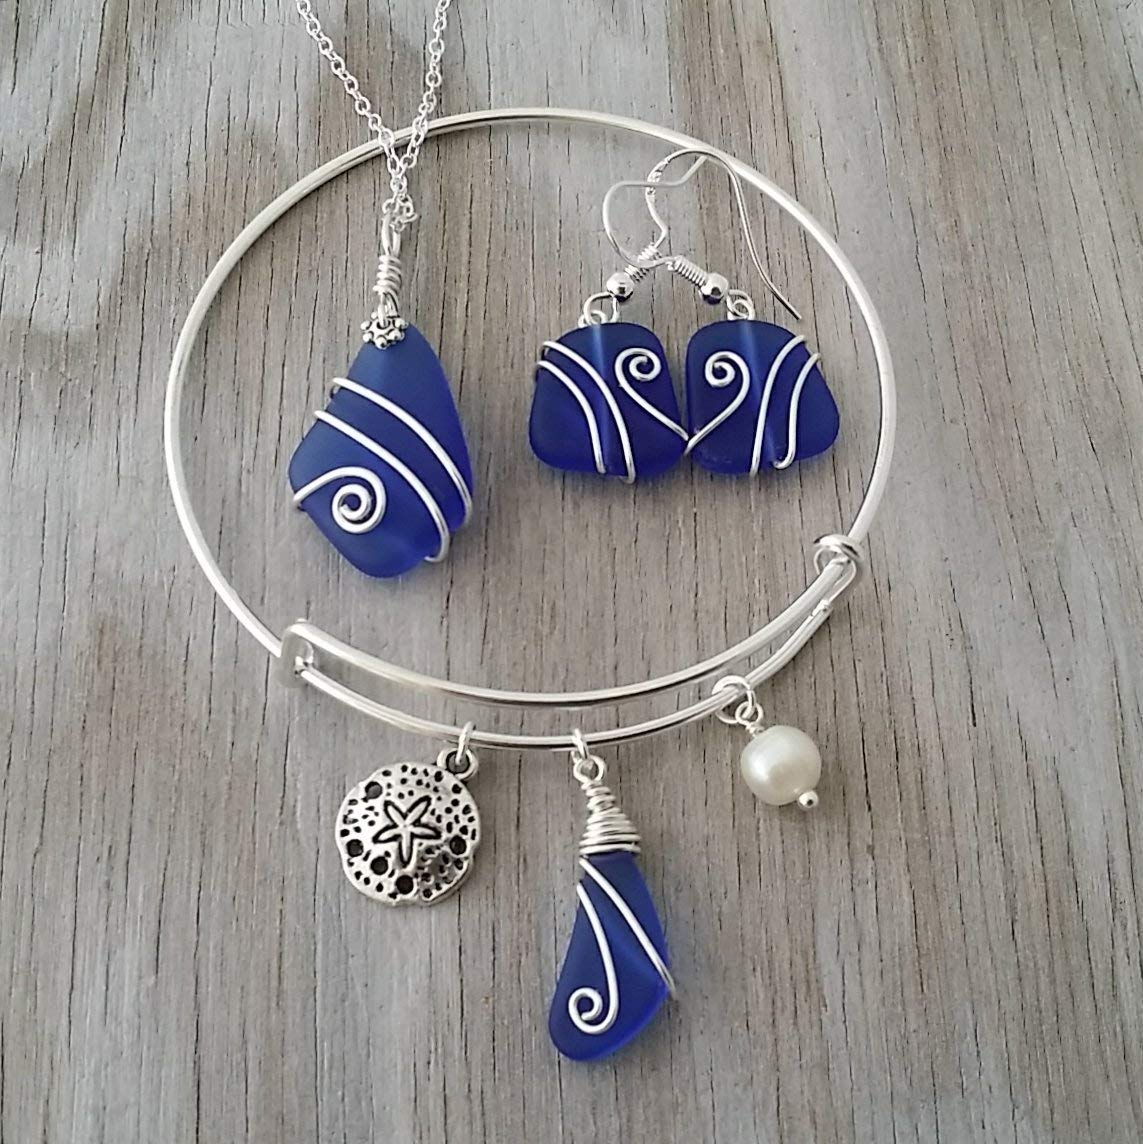 Handmade in Hawaii, Wire wrapped cobalt blue sea glass necklace + earrings + bracelet jewelry set, Sand dollar charm, Hawaiian Gift, FREE gift wrap, FREE gift message, FREE shipping